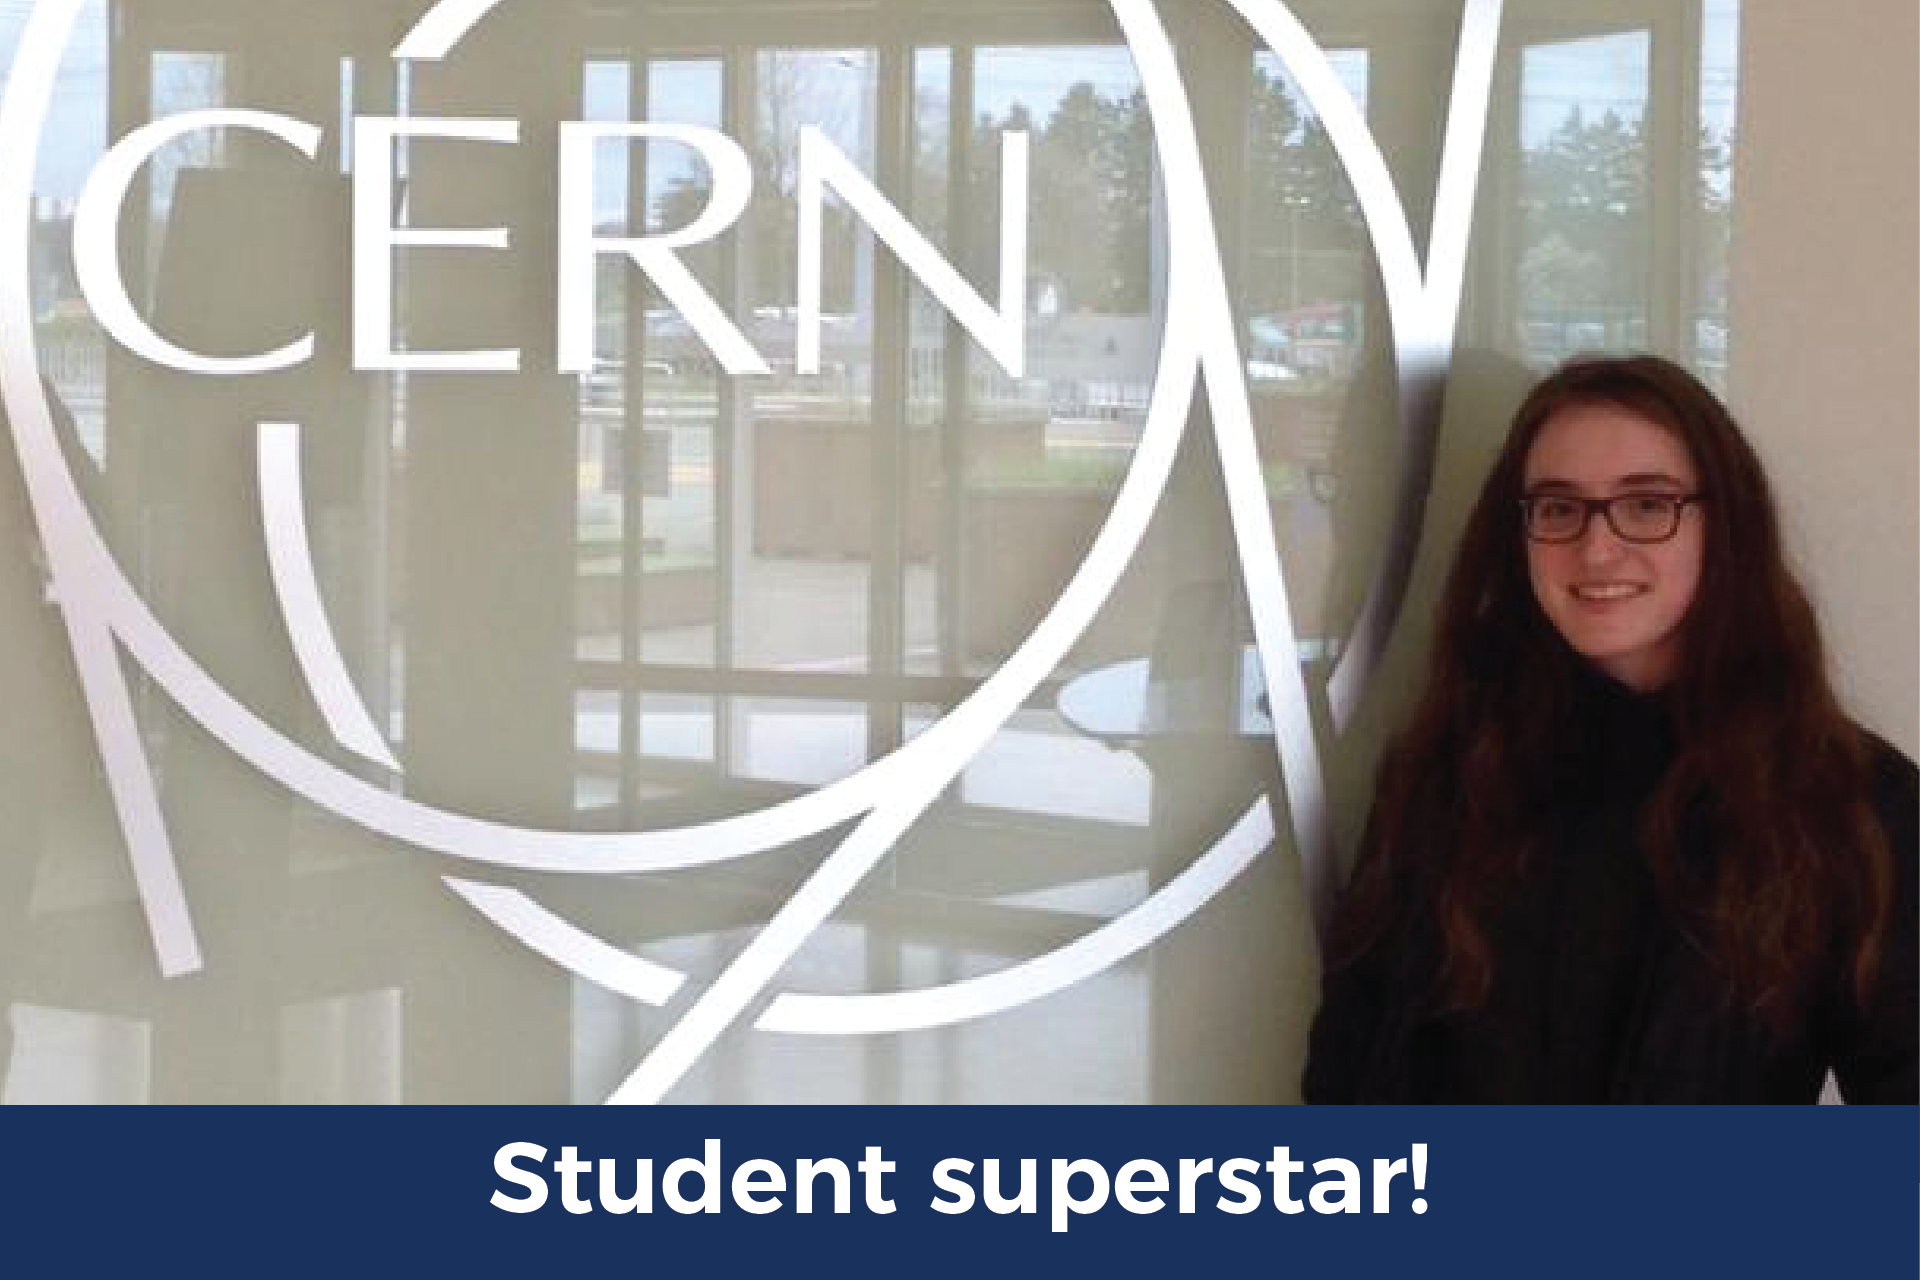 Student Superstars